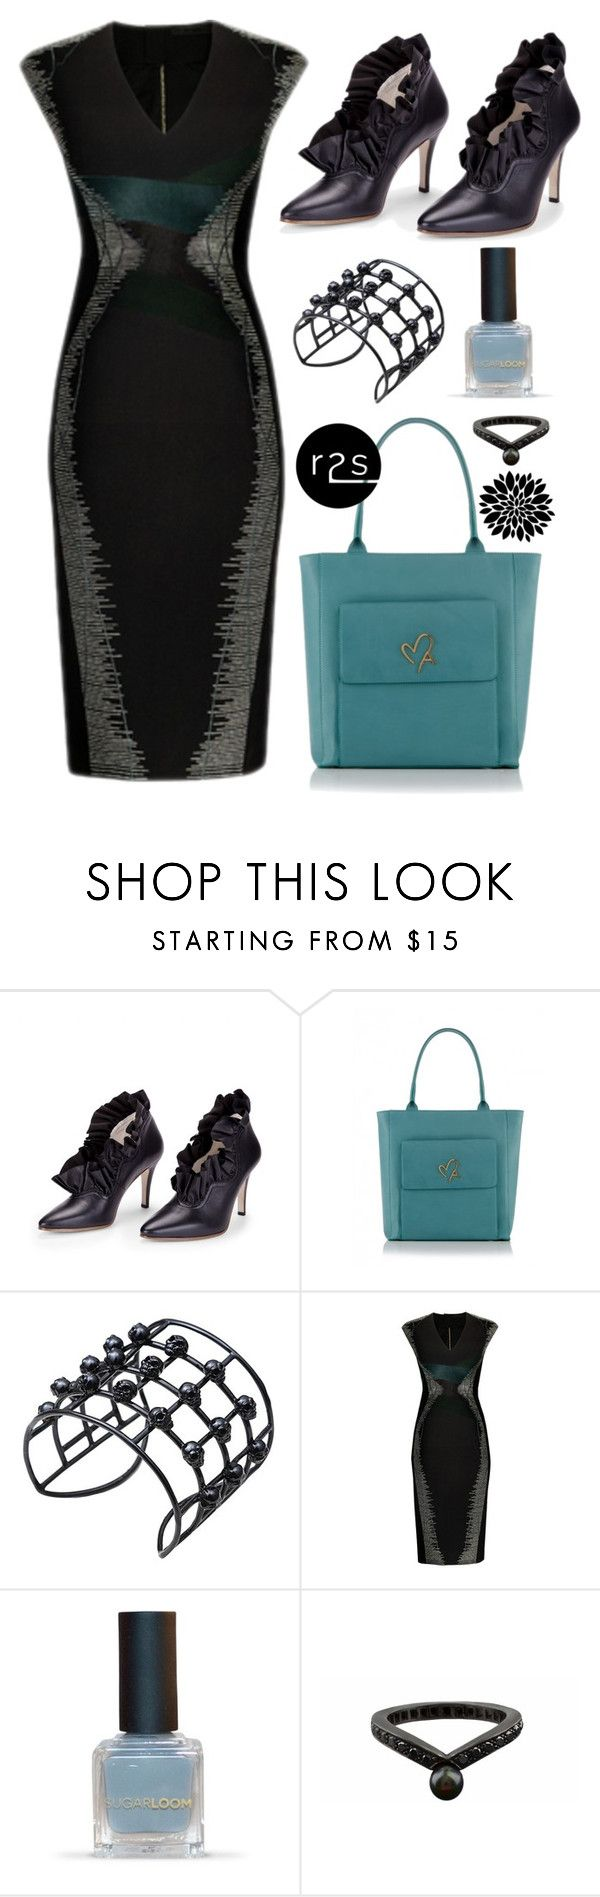 """""""Fun work outfit!"""" by runway2street ❤ liked on Polyvore featuring Zoe Lee, Bernard Delettrez and Karapetyan"""